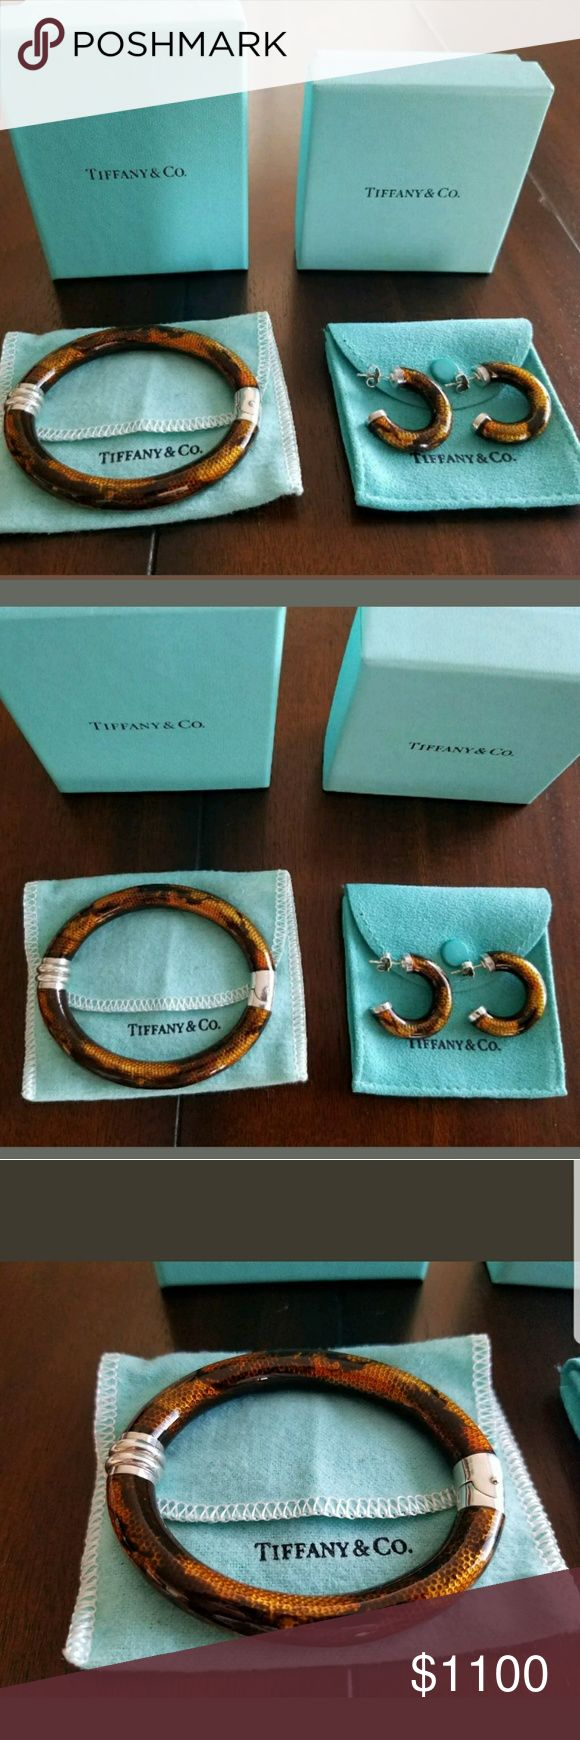 Tiffany & Co Sterling enameled earrings bracelet Vintage one of a kind set  Tiffany and Co  Enameled bracelet and earrings set  Authentic 100 % guaranteed Tiffany & Co. Jewelry